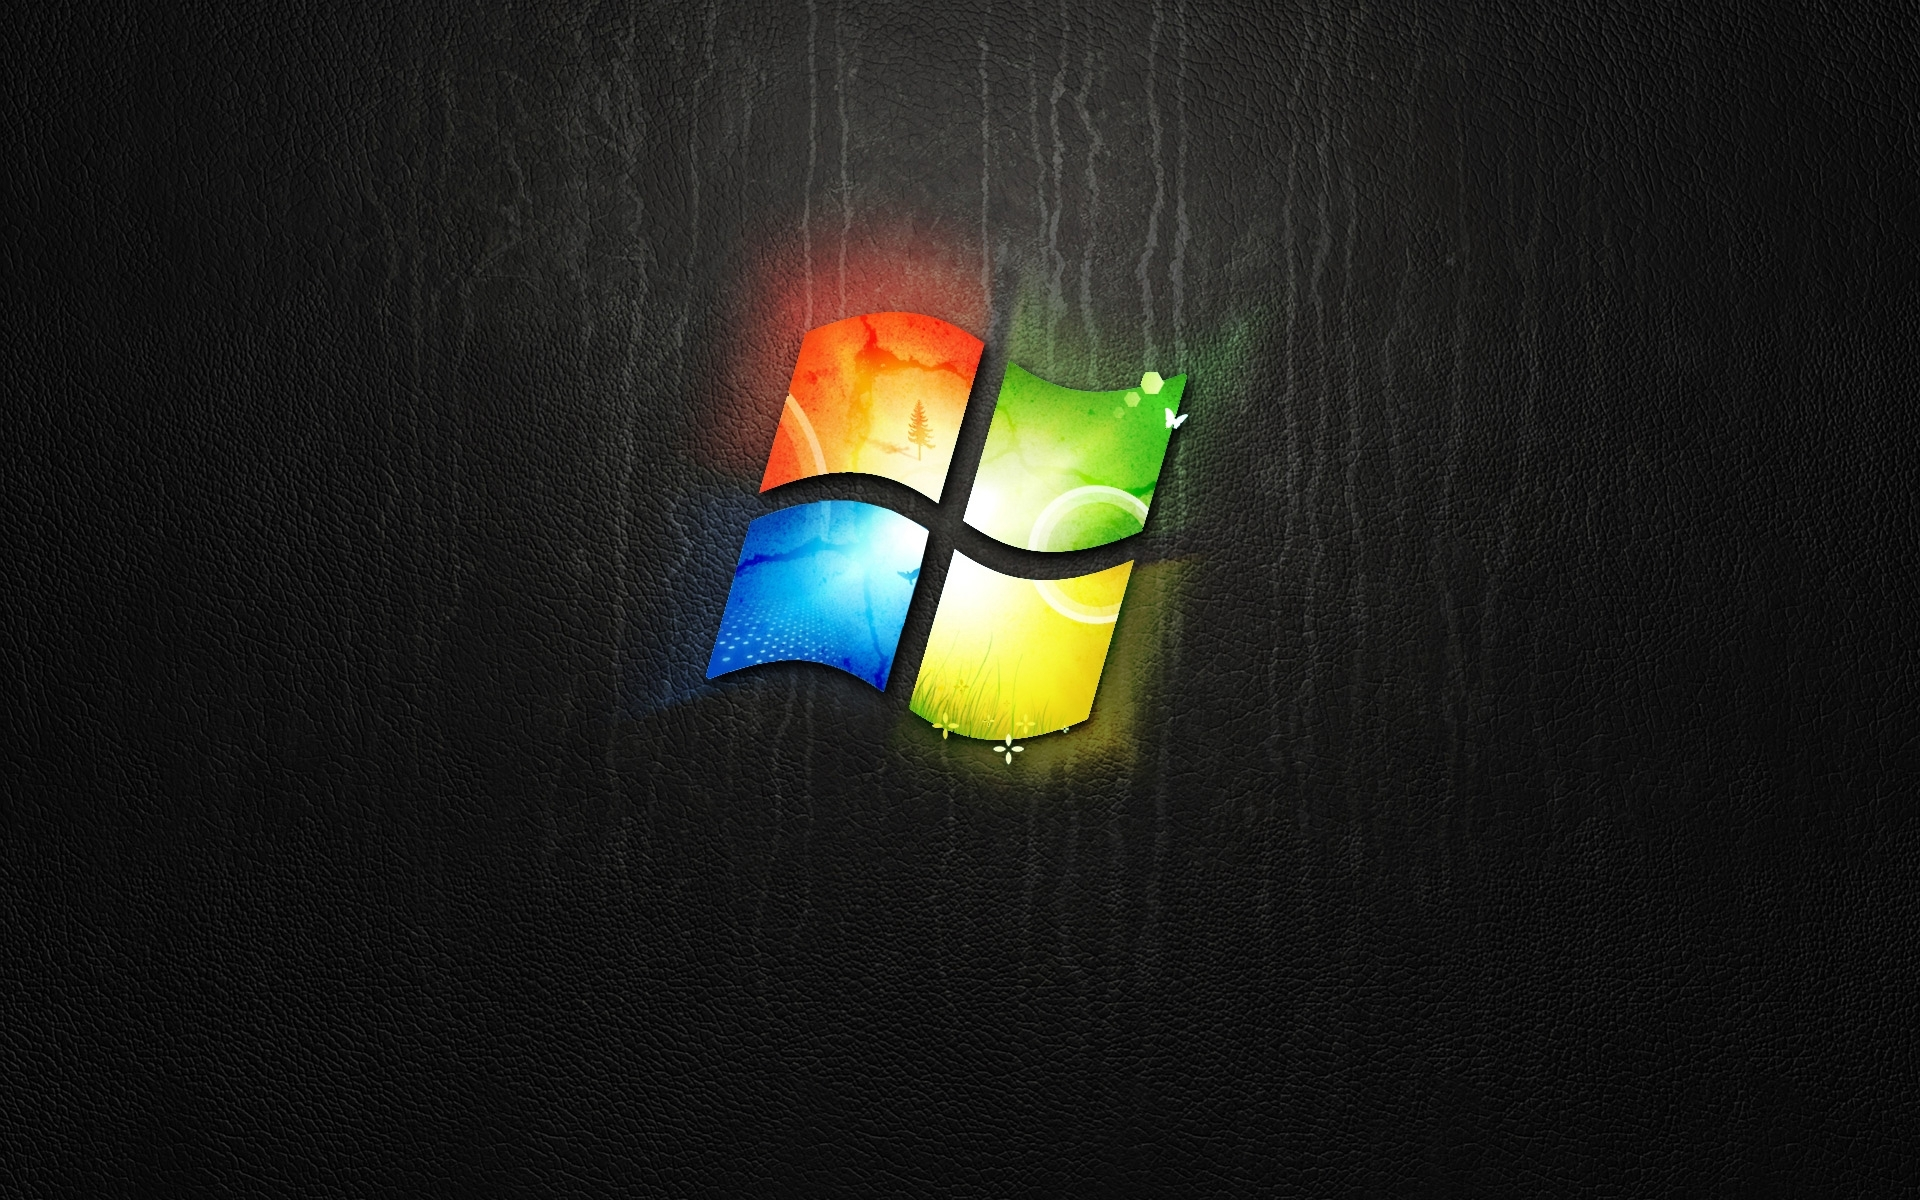 dark windows logo wallpapers | hd wallpapers | id #7169